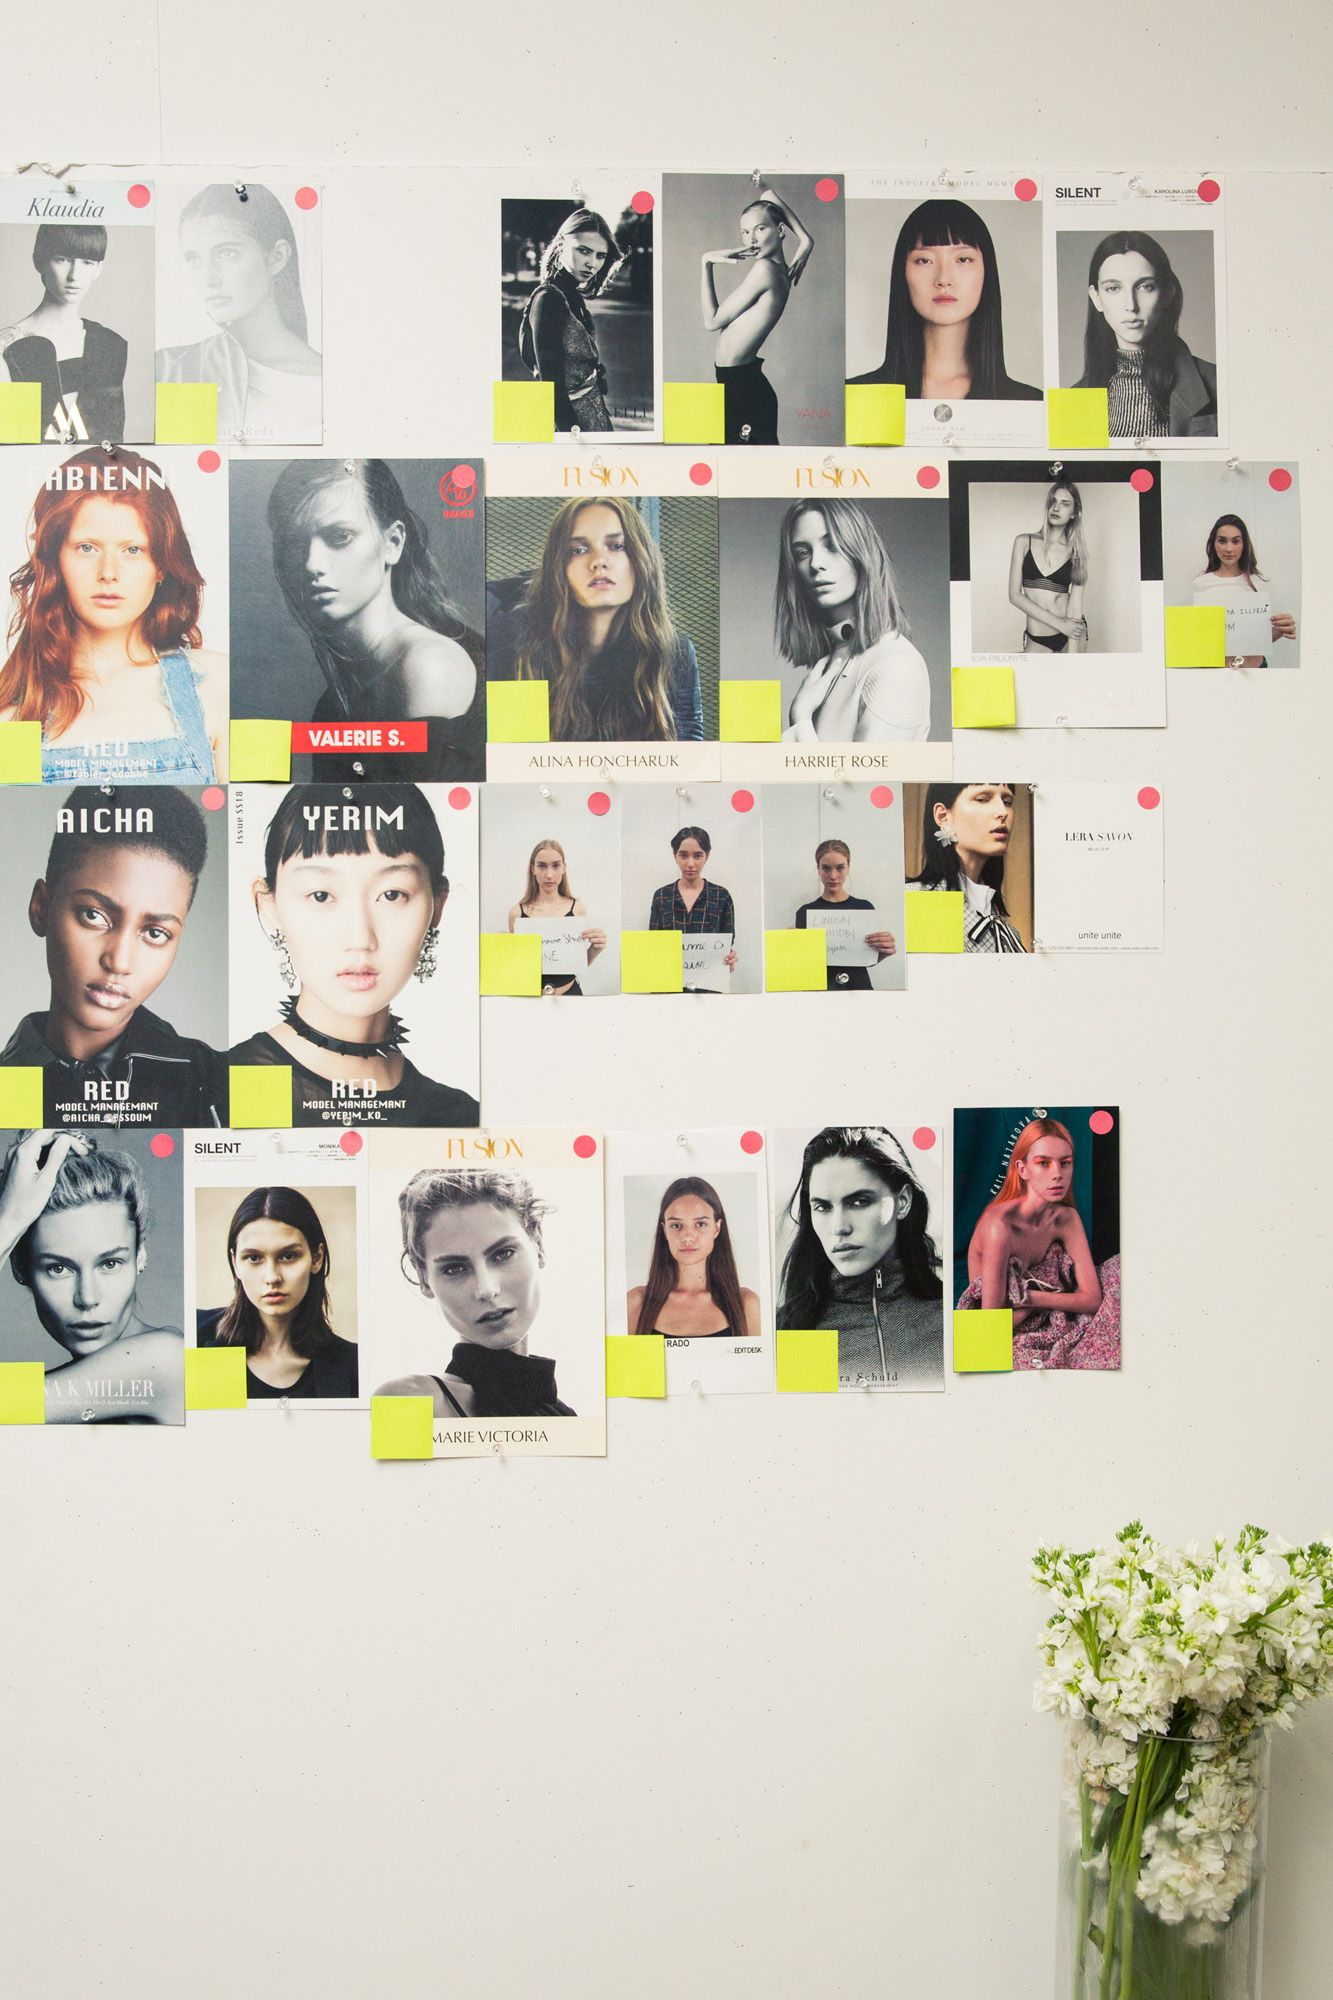 Our new favorite designer already has bella hadidus approval wall